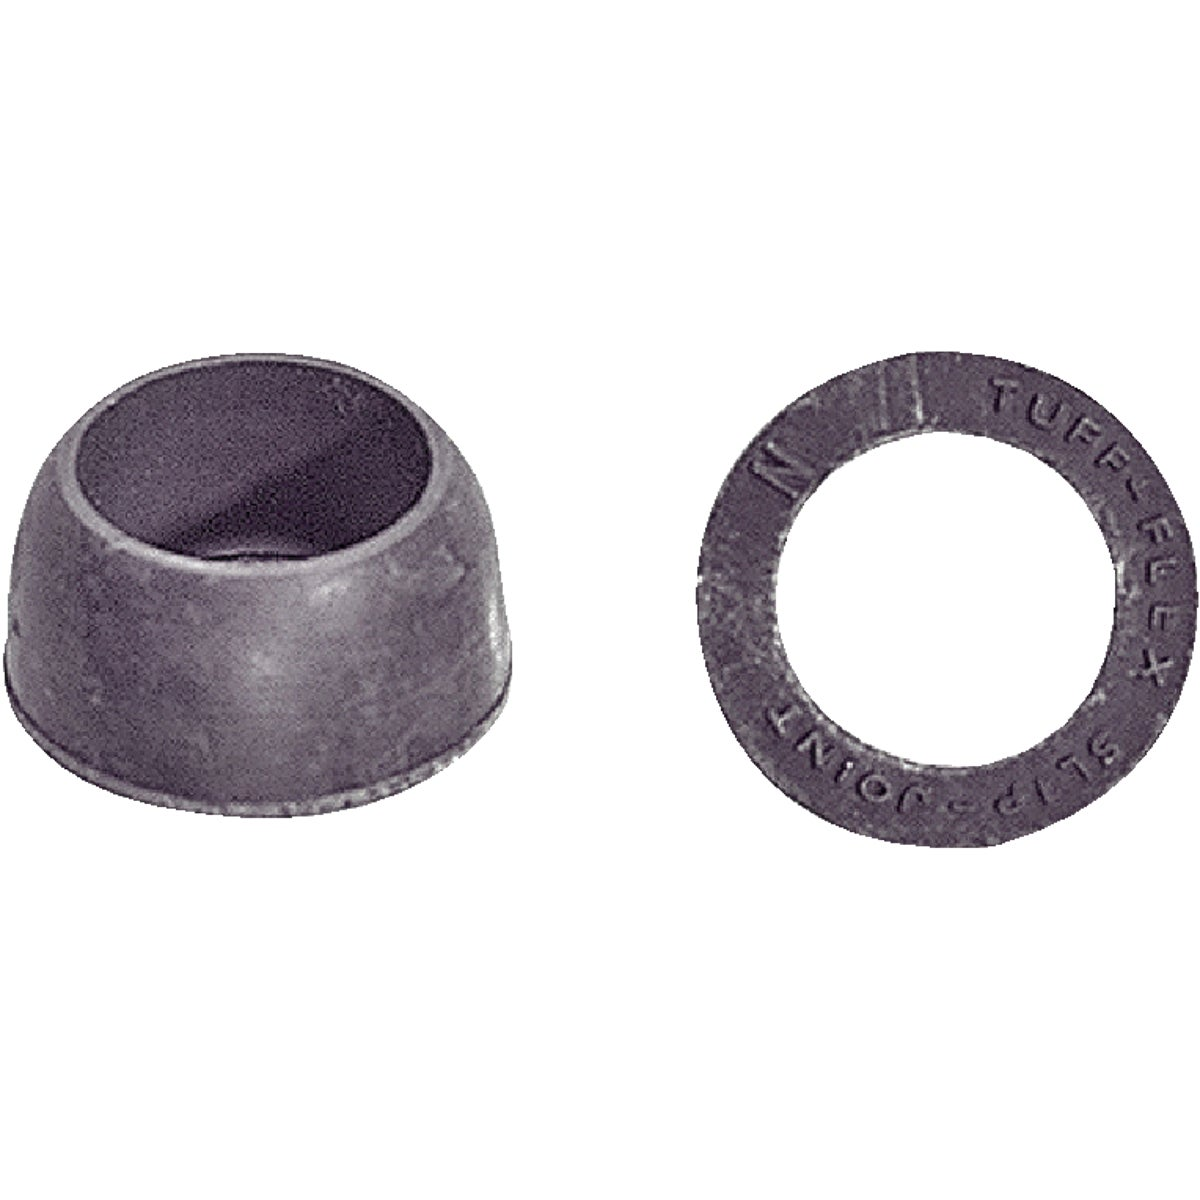 SLIP JOINT CONE WASHER